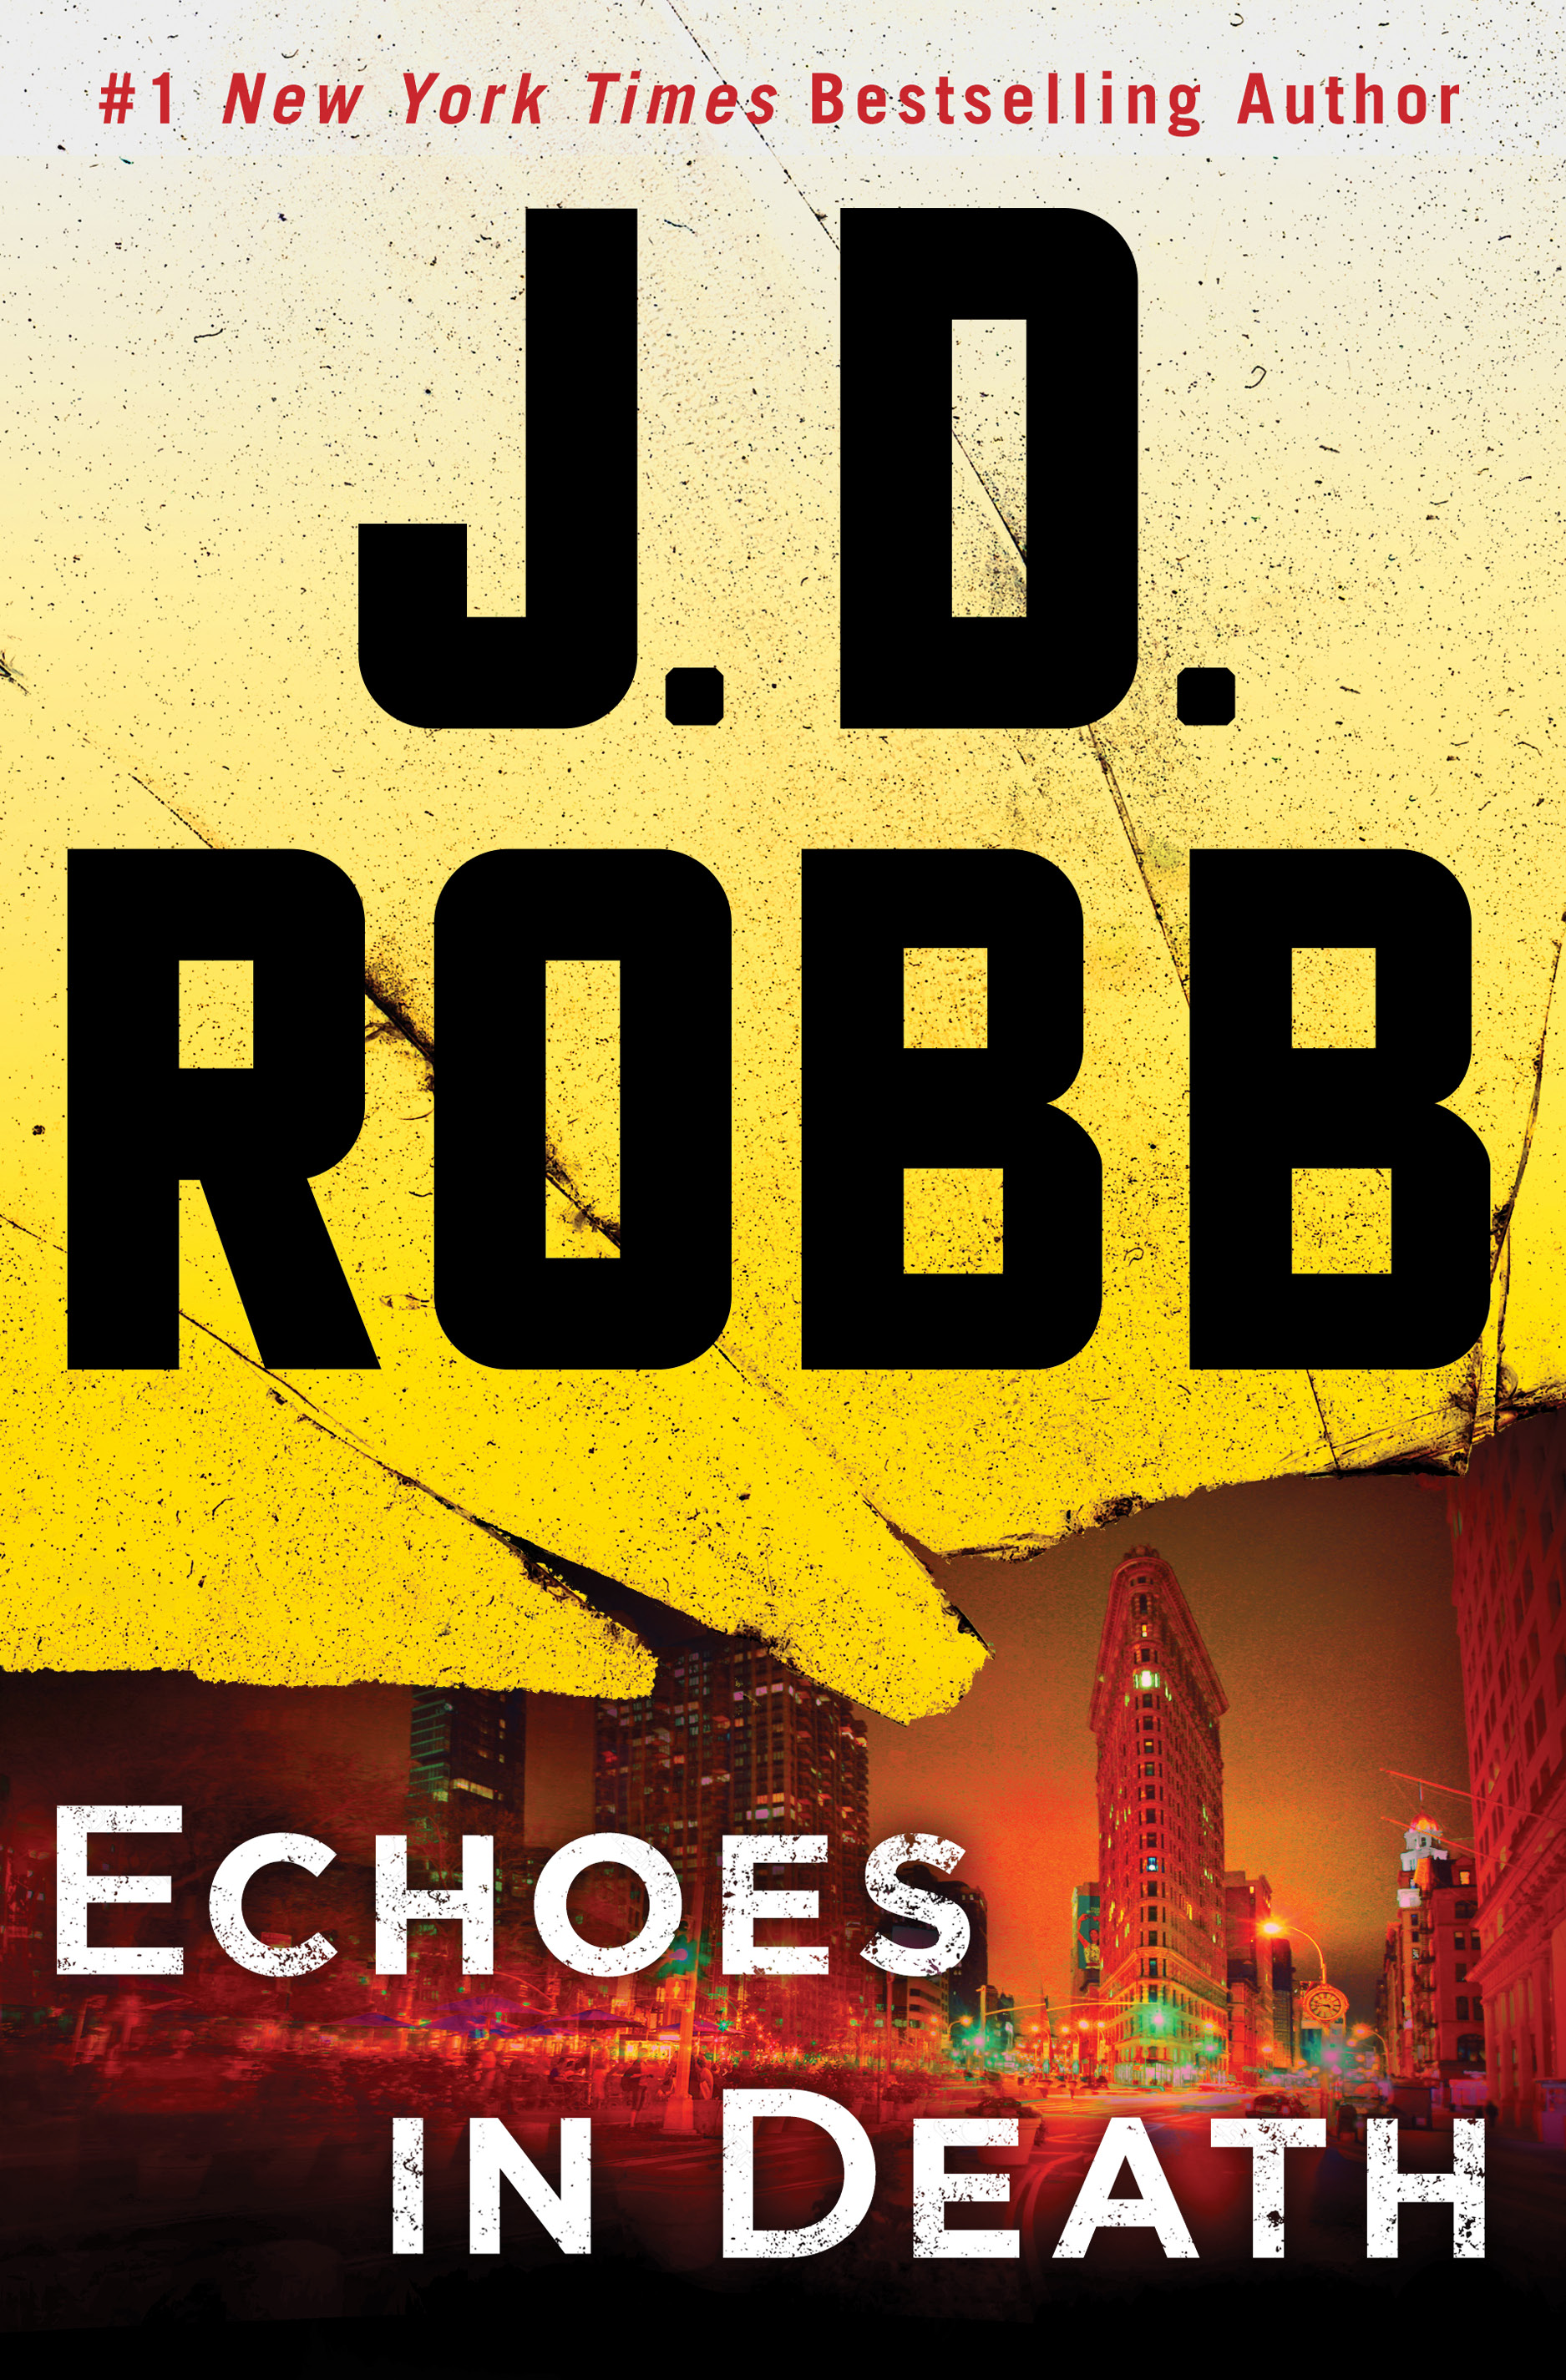 Echoes in death : An Eve Dallas Novel (In Death, Book 44)